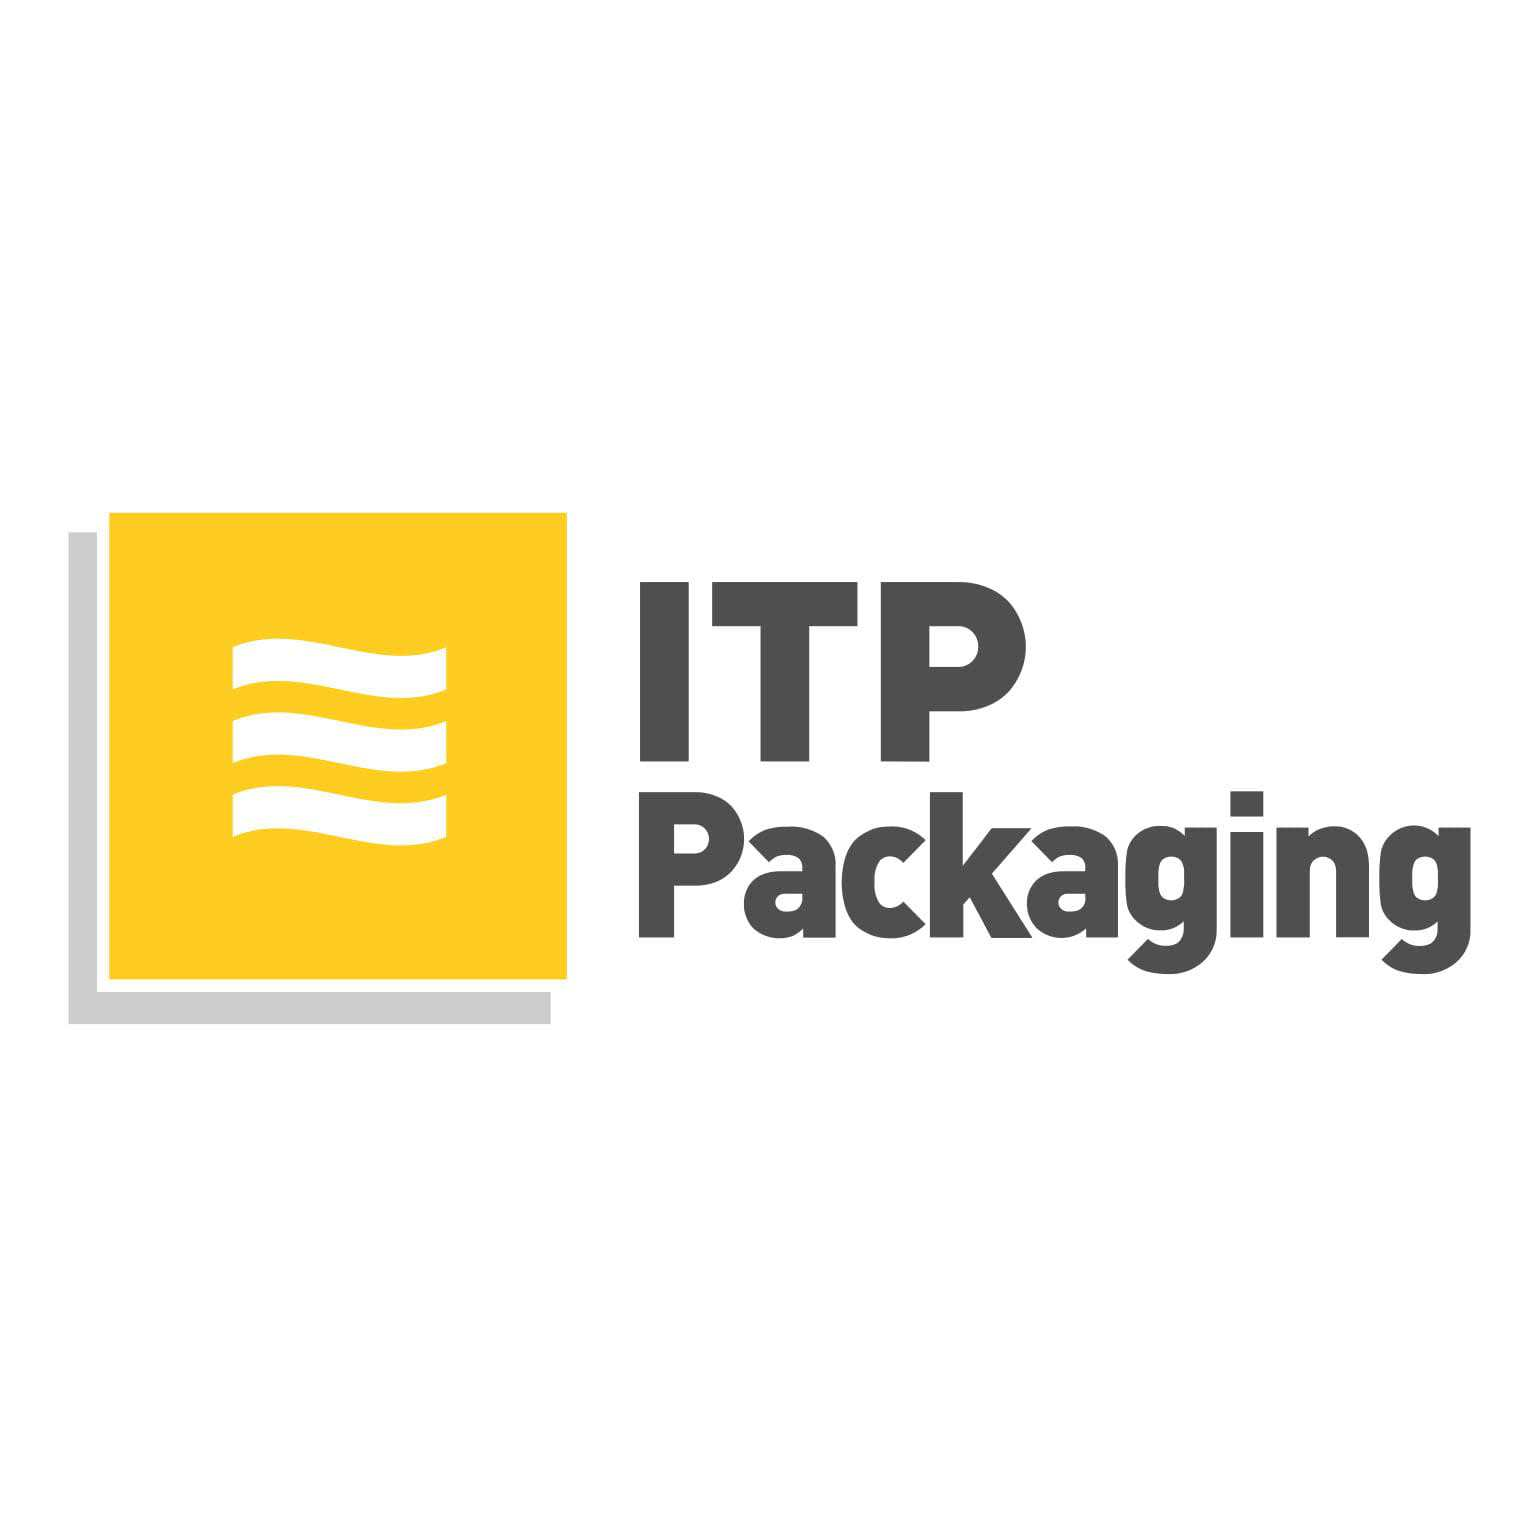 ITP Packaging - Southport, Merseyside PR9 7PU - 03339 874565 | ShowMeLocal.com